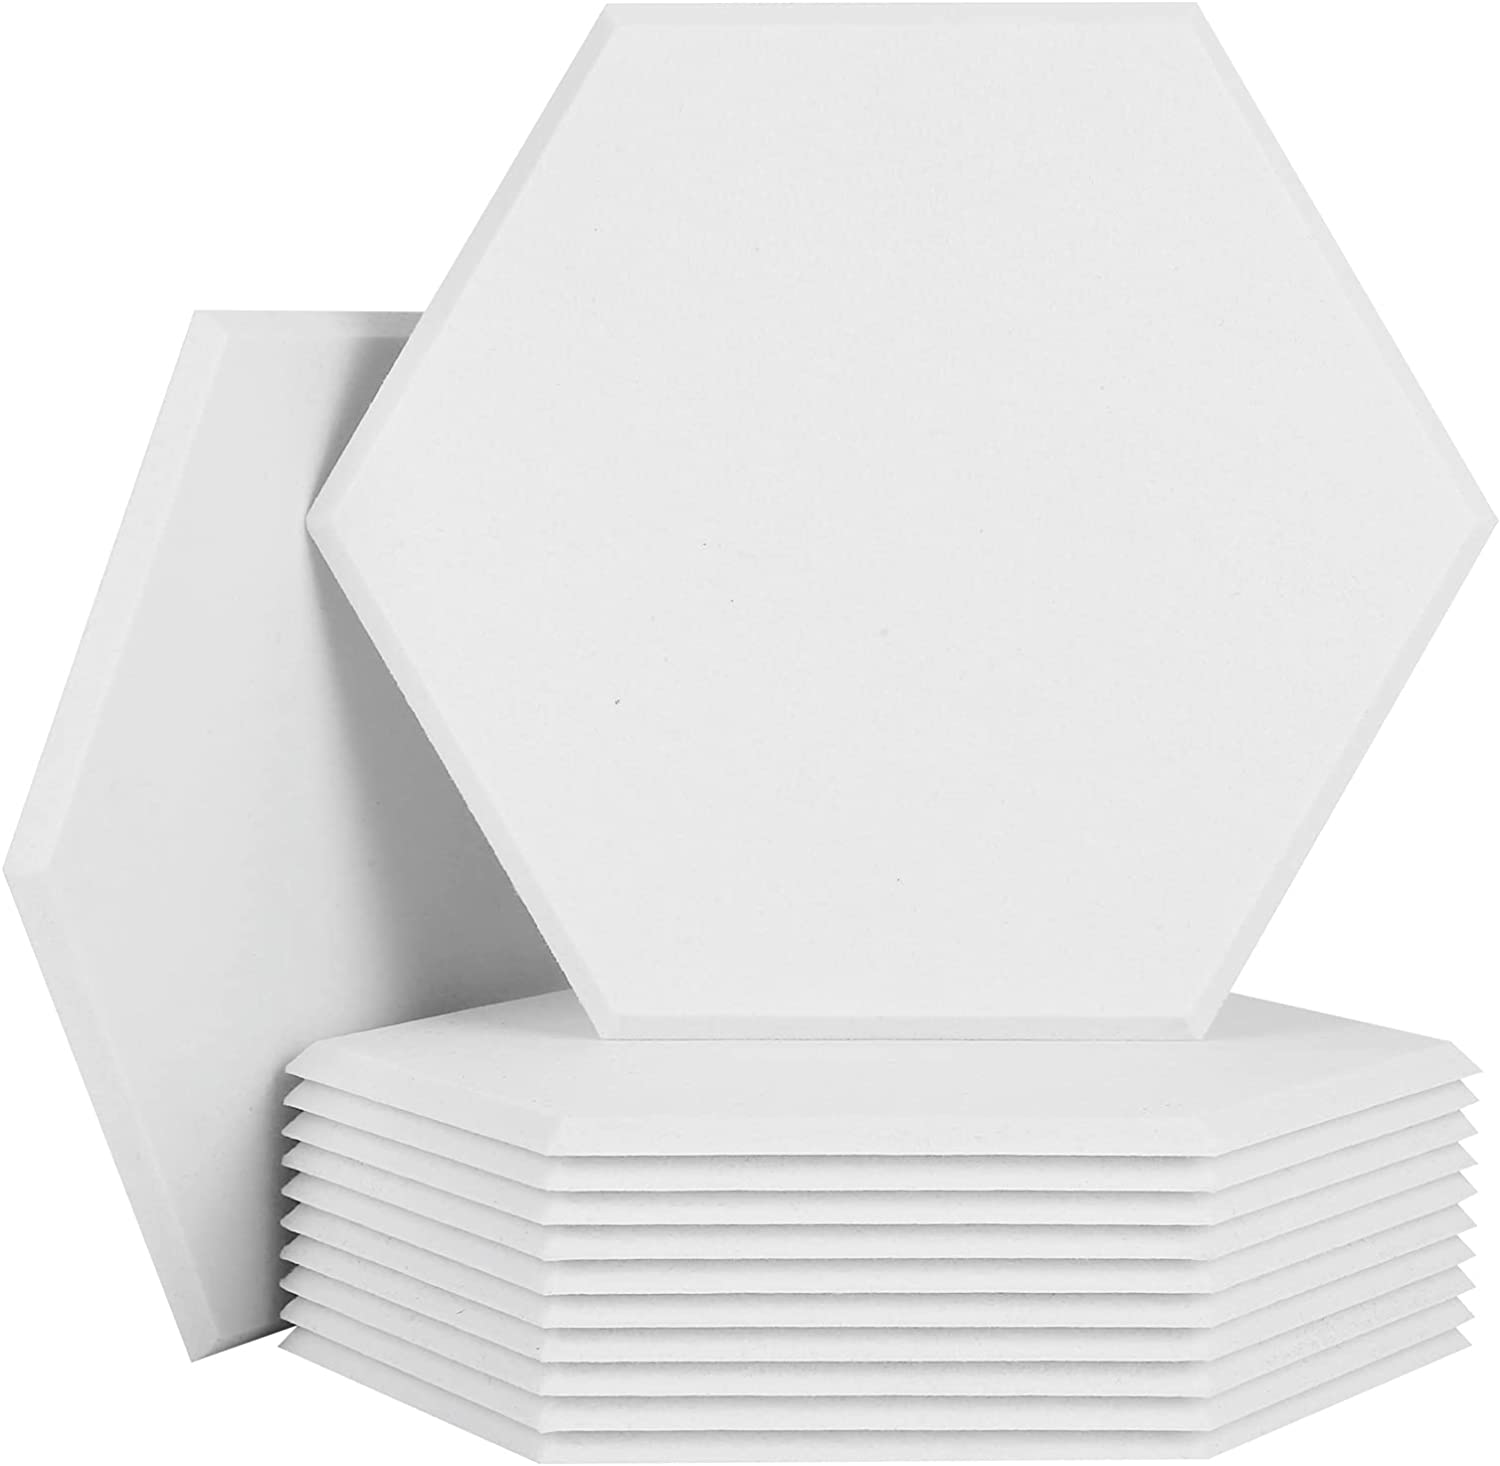 BUBOS 12 Pack Hexagon Acoustic Panels Soundproof Wall Panels,14 X 13 X 0.4Inches Sound Absorbing Panels Acoustical Wall Panels, Acoustic Treatment for Recording Studio, Office, Home Studio,White